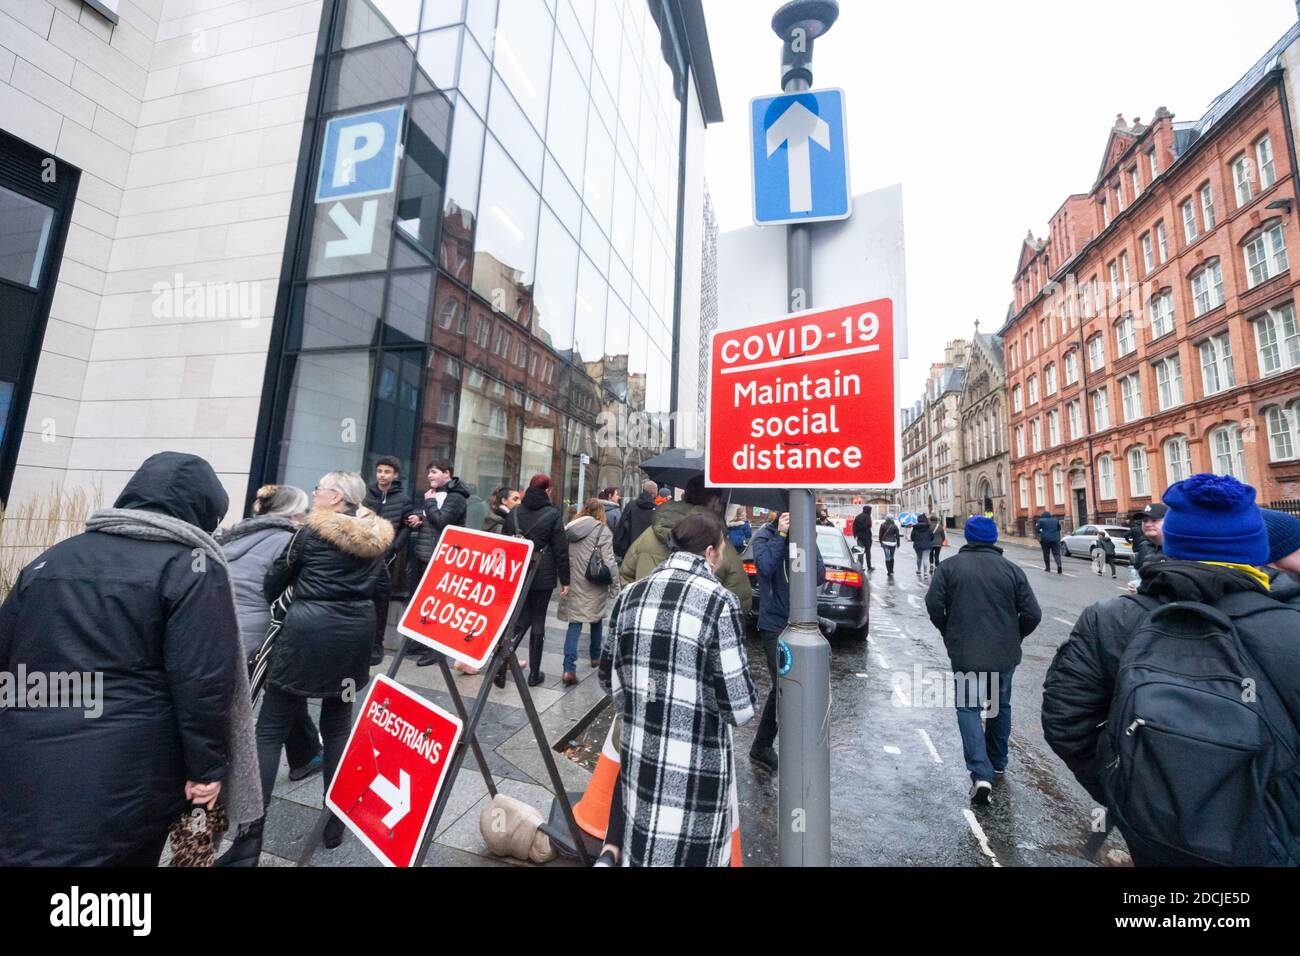 Crosshall St, Liverpool, 21st Nov 2020: COVID-19 signage and crowds of protesters marching against lockdown restrictions in the UK Stock Photo